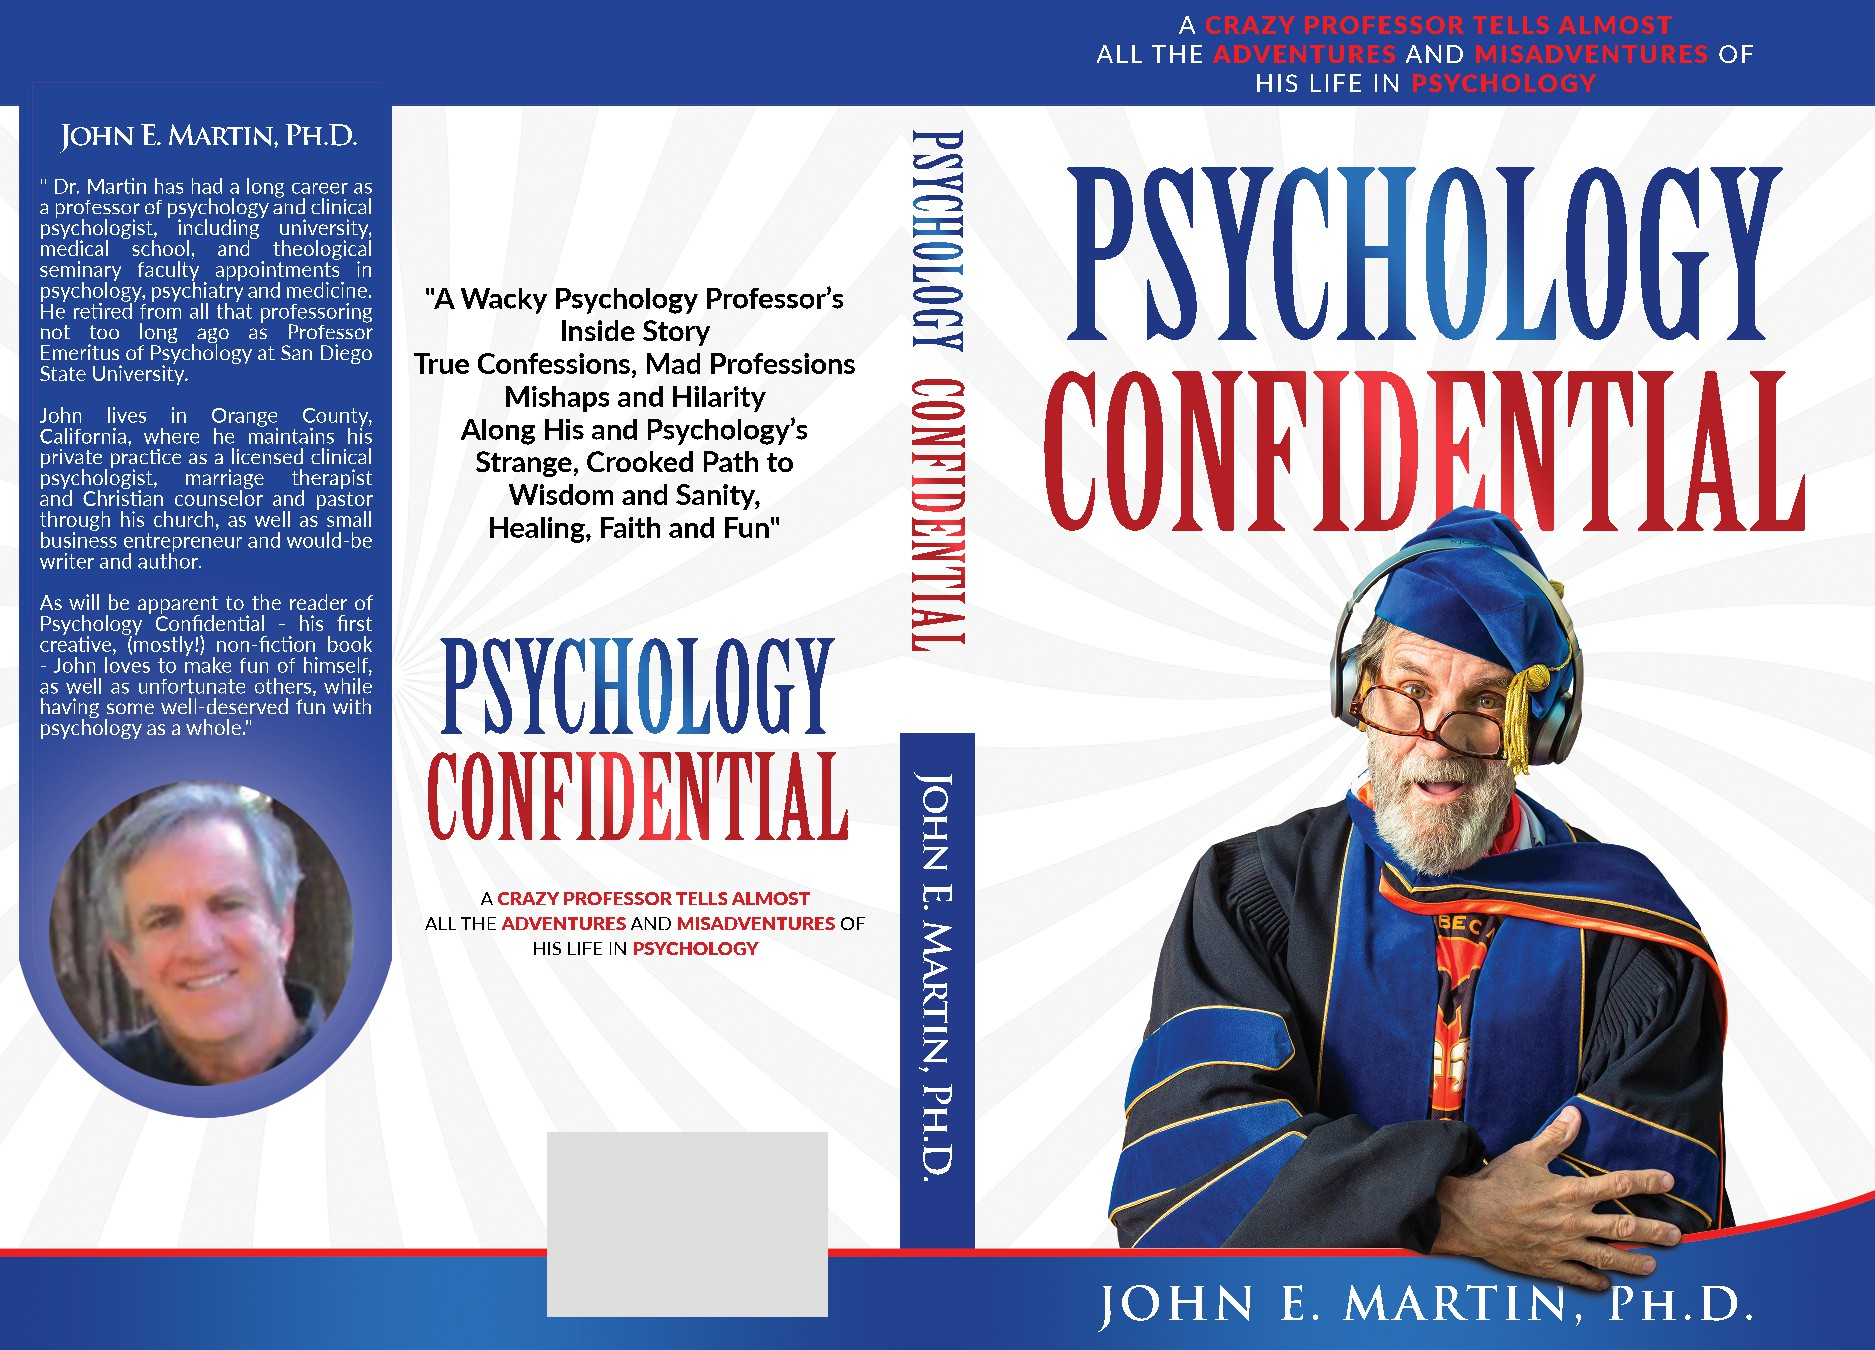 Cover for book on funny stories about a psychology professor's experiences with students and clients